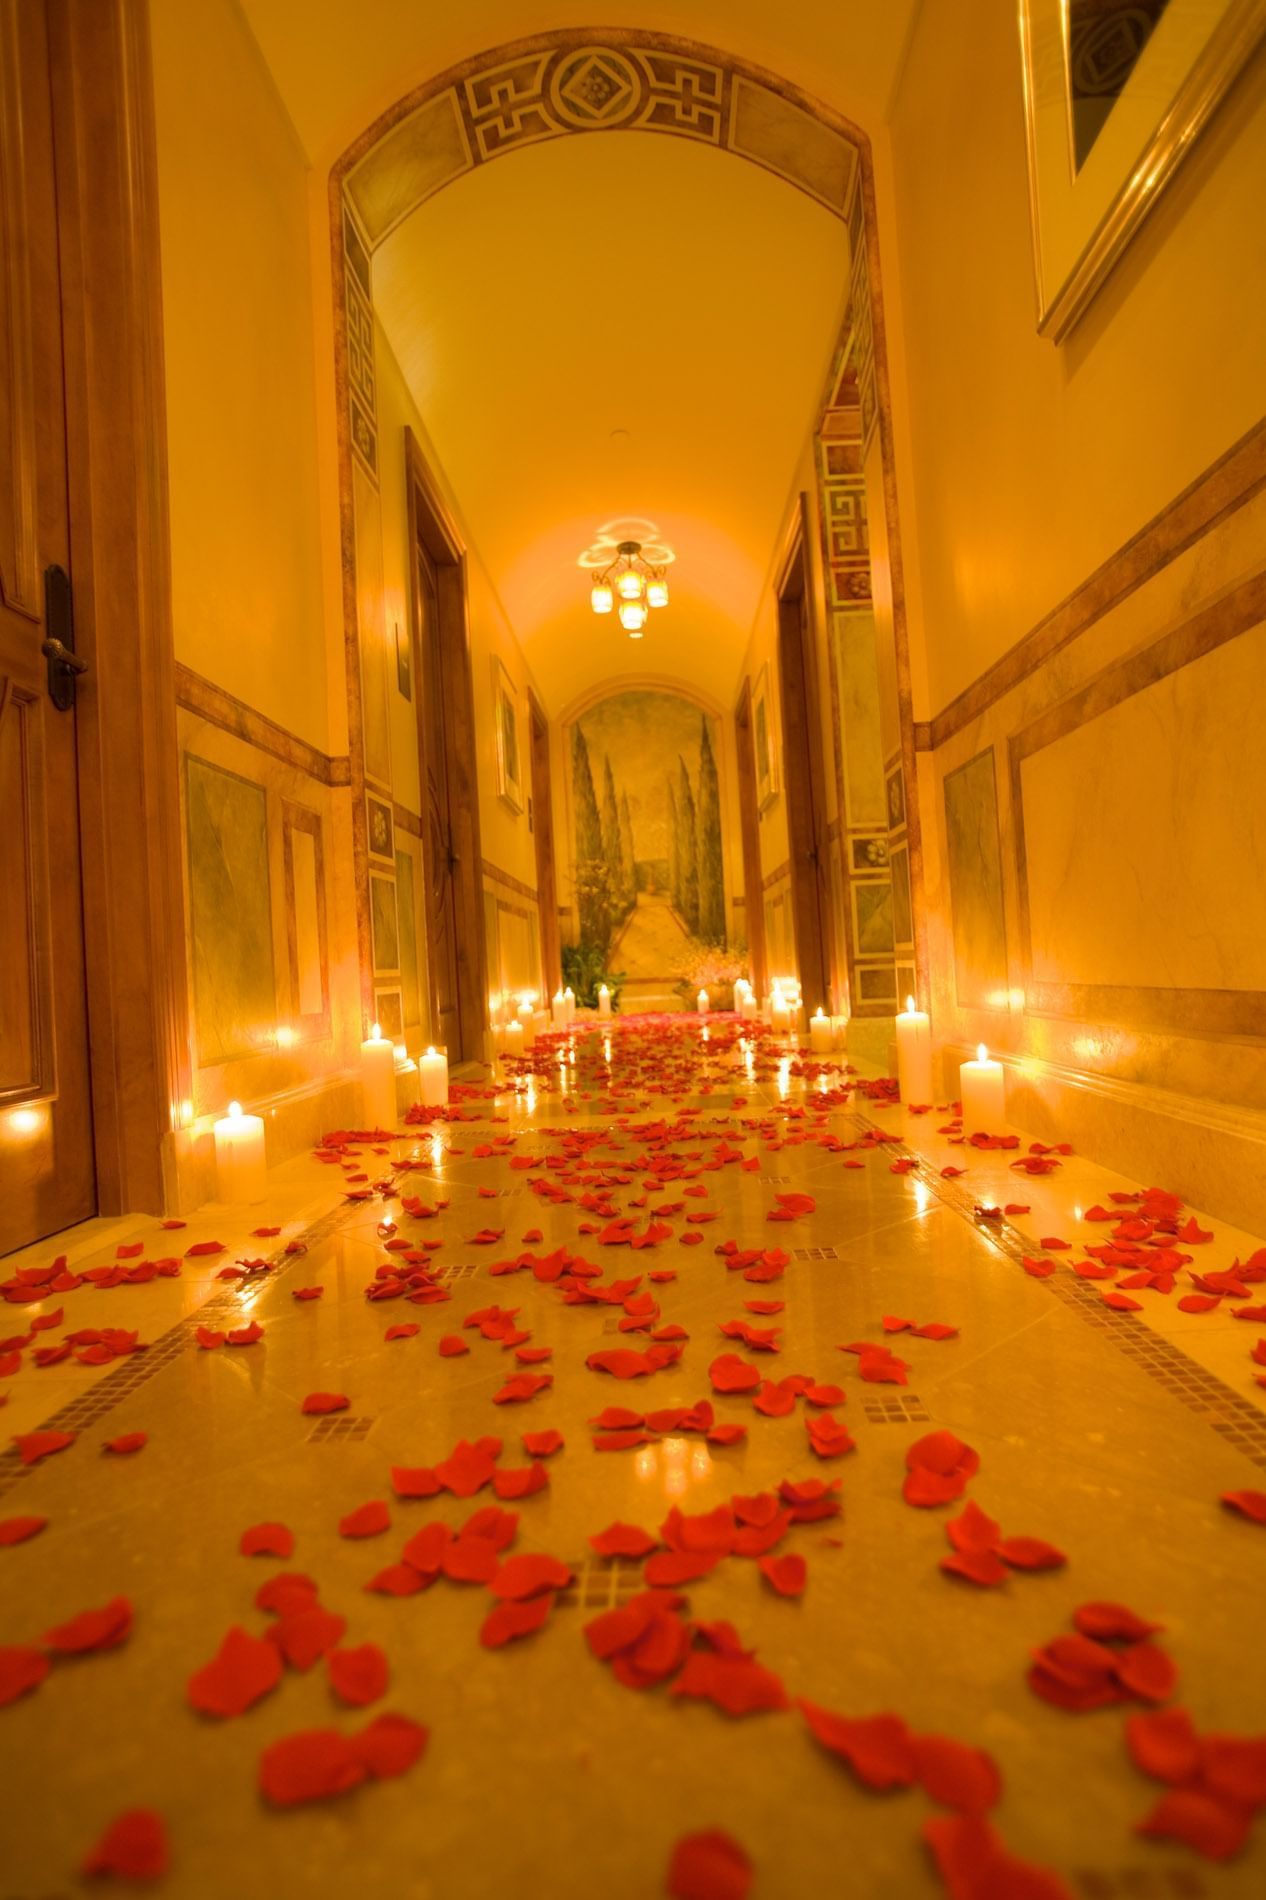 hallway with candles and rose petals on the ground